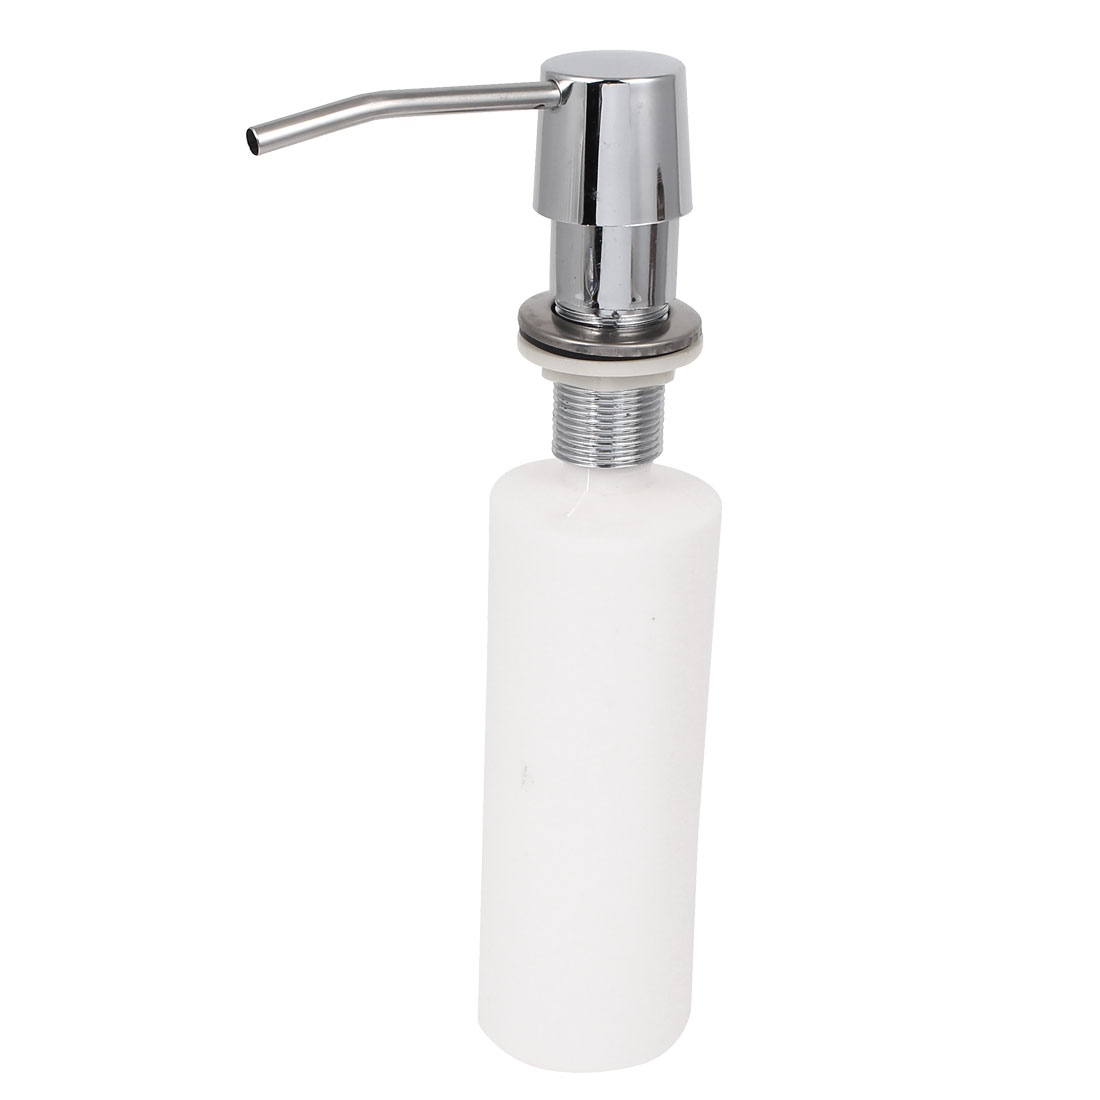 Household Bathroom Kitchen Stainless Steel Head Liquid Soap Faucet Sink Pump